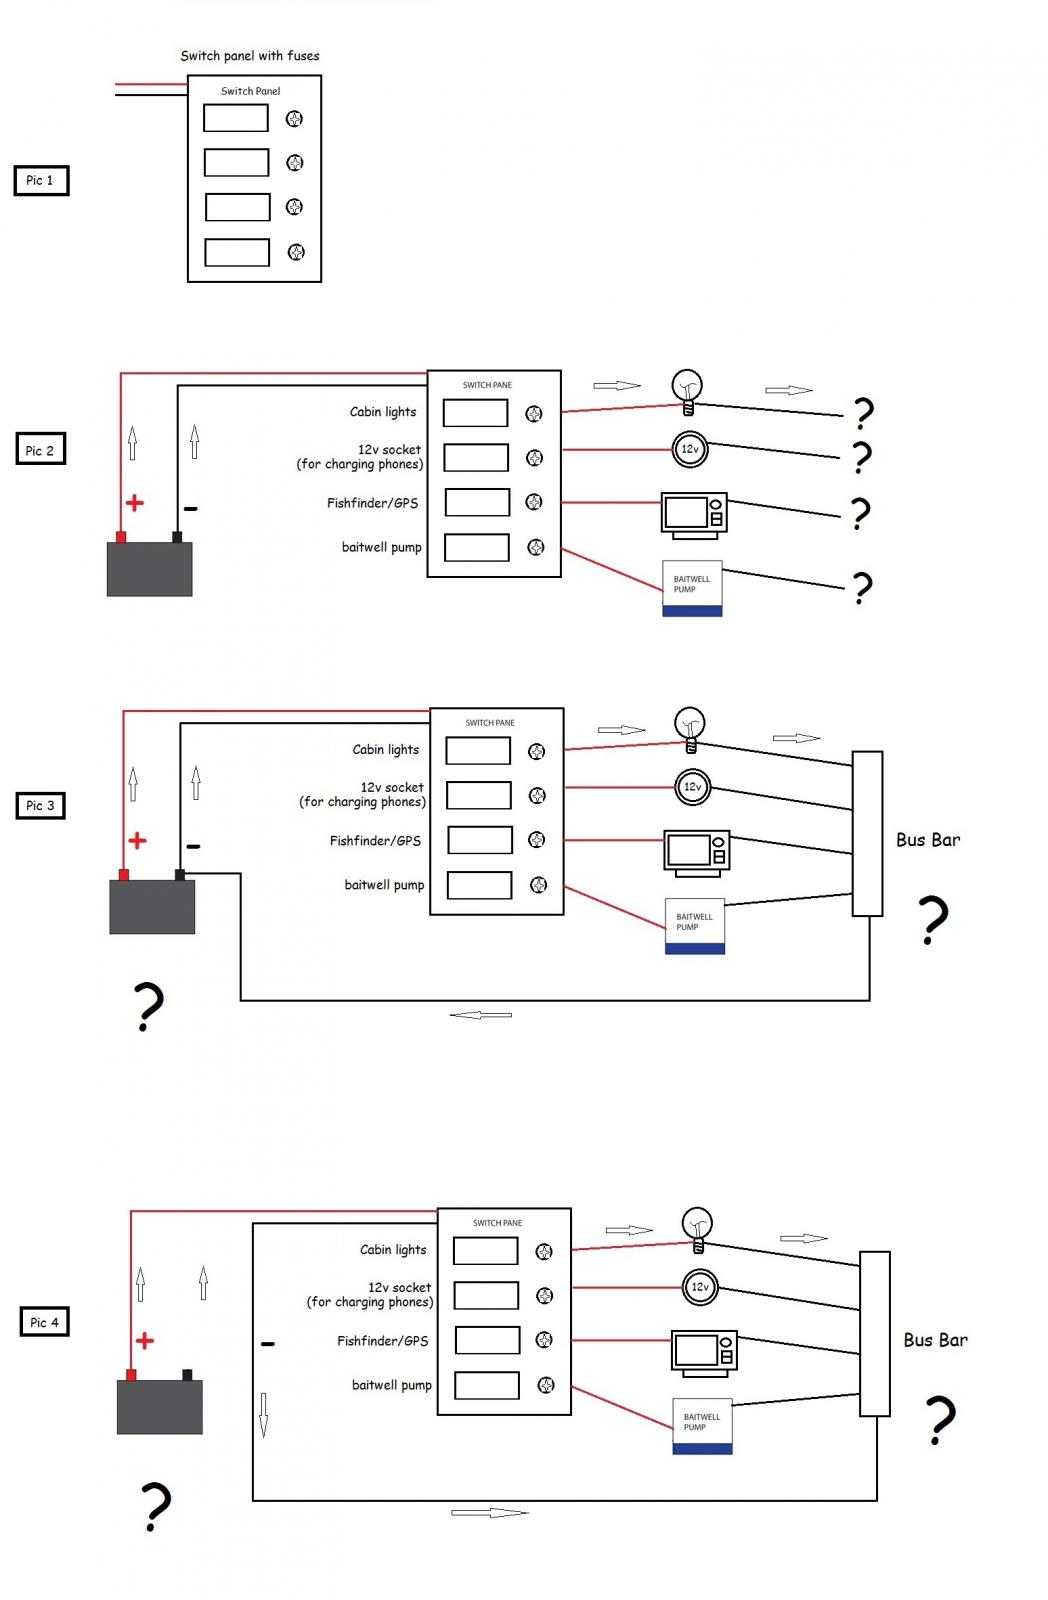 wiring diagram for switch panel today wiring schematic diagram LED Toggle Switch Wiring Diagram